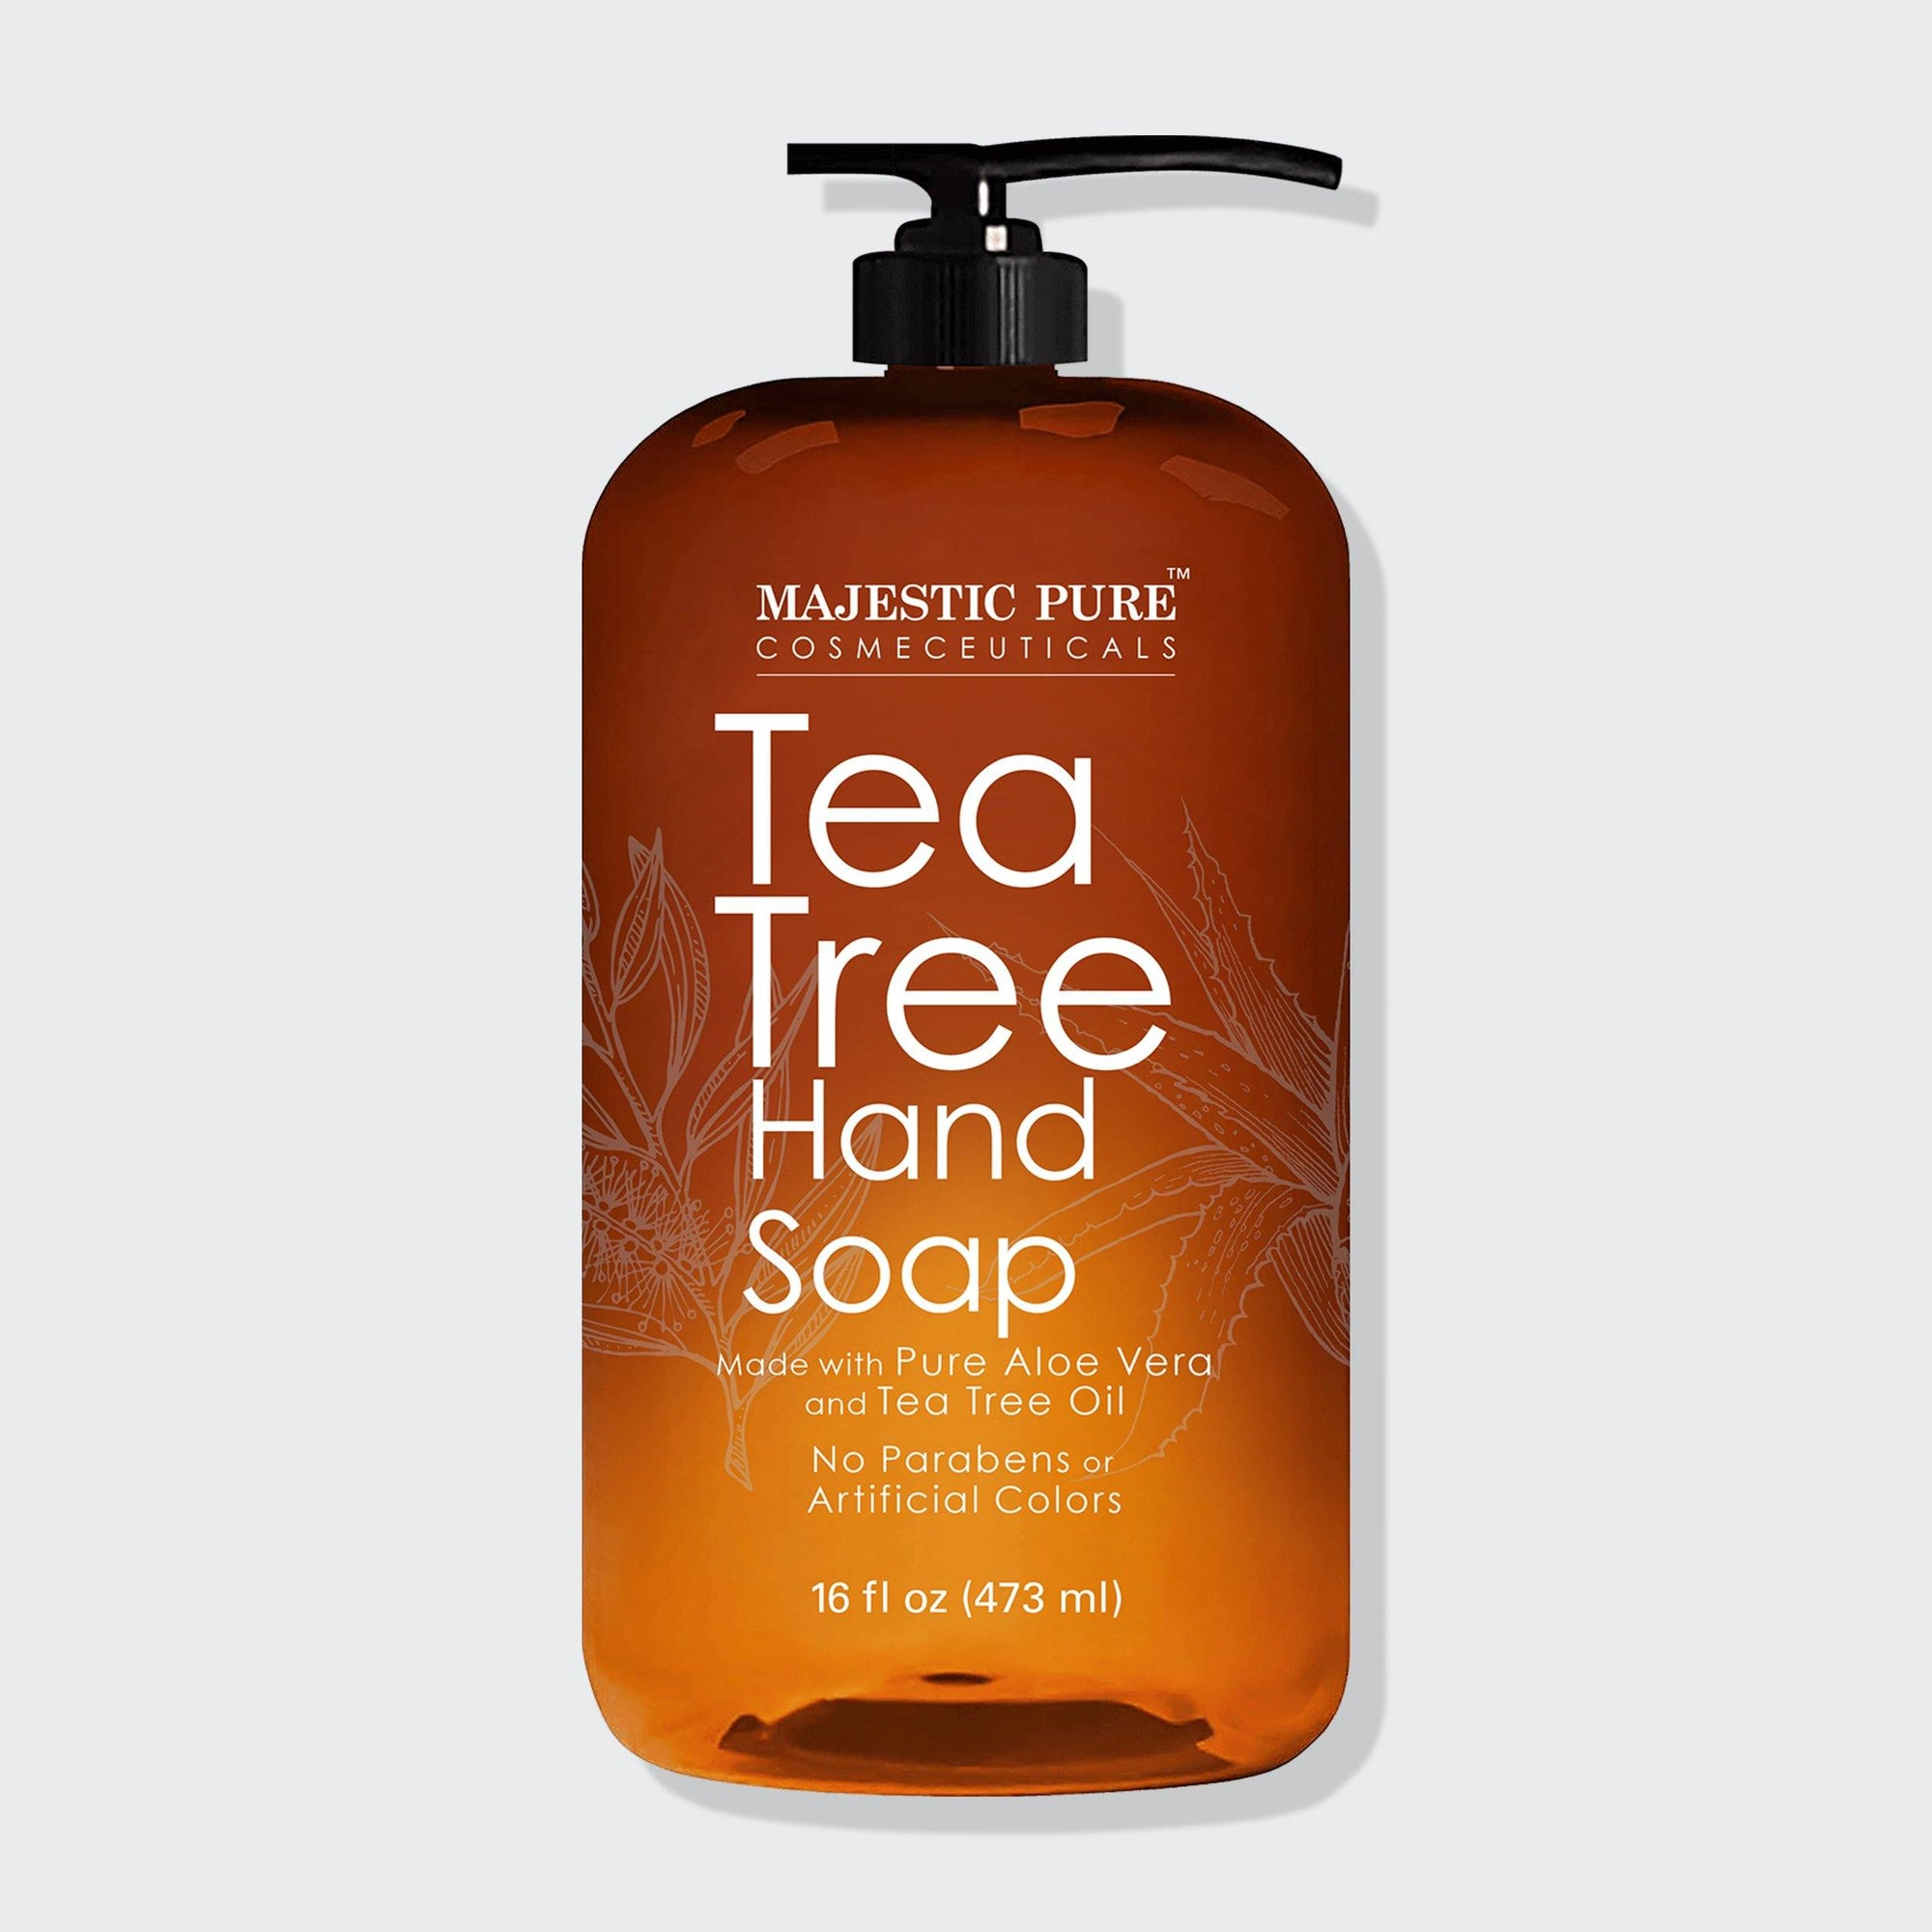 TEA TREE HAND SOAP (16 FL OZ)